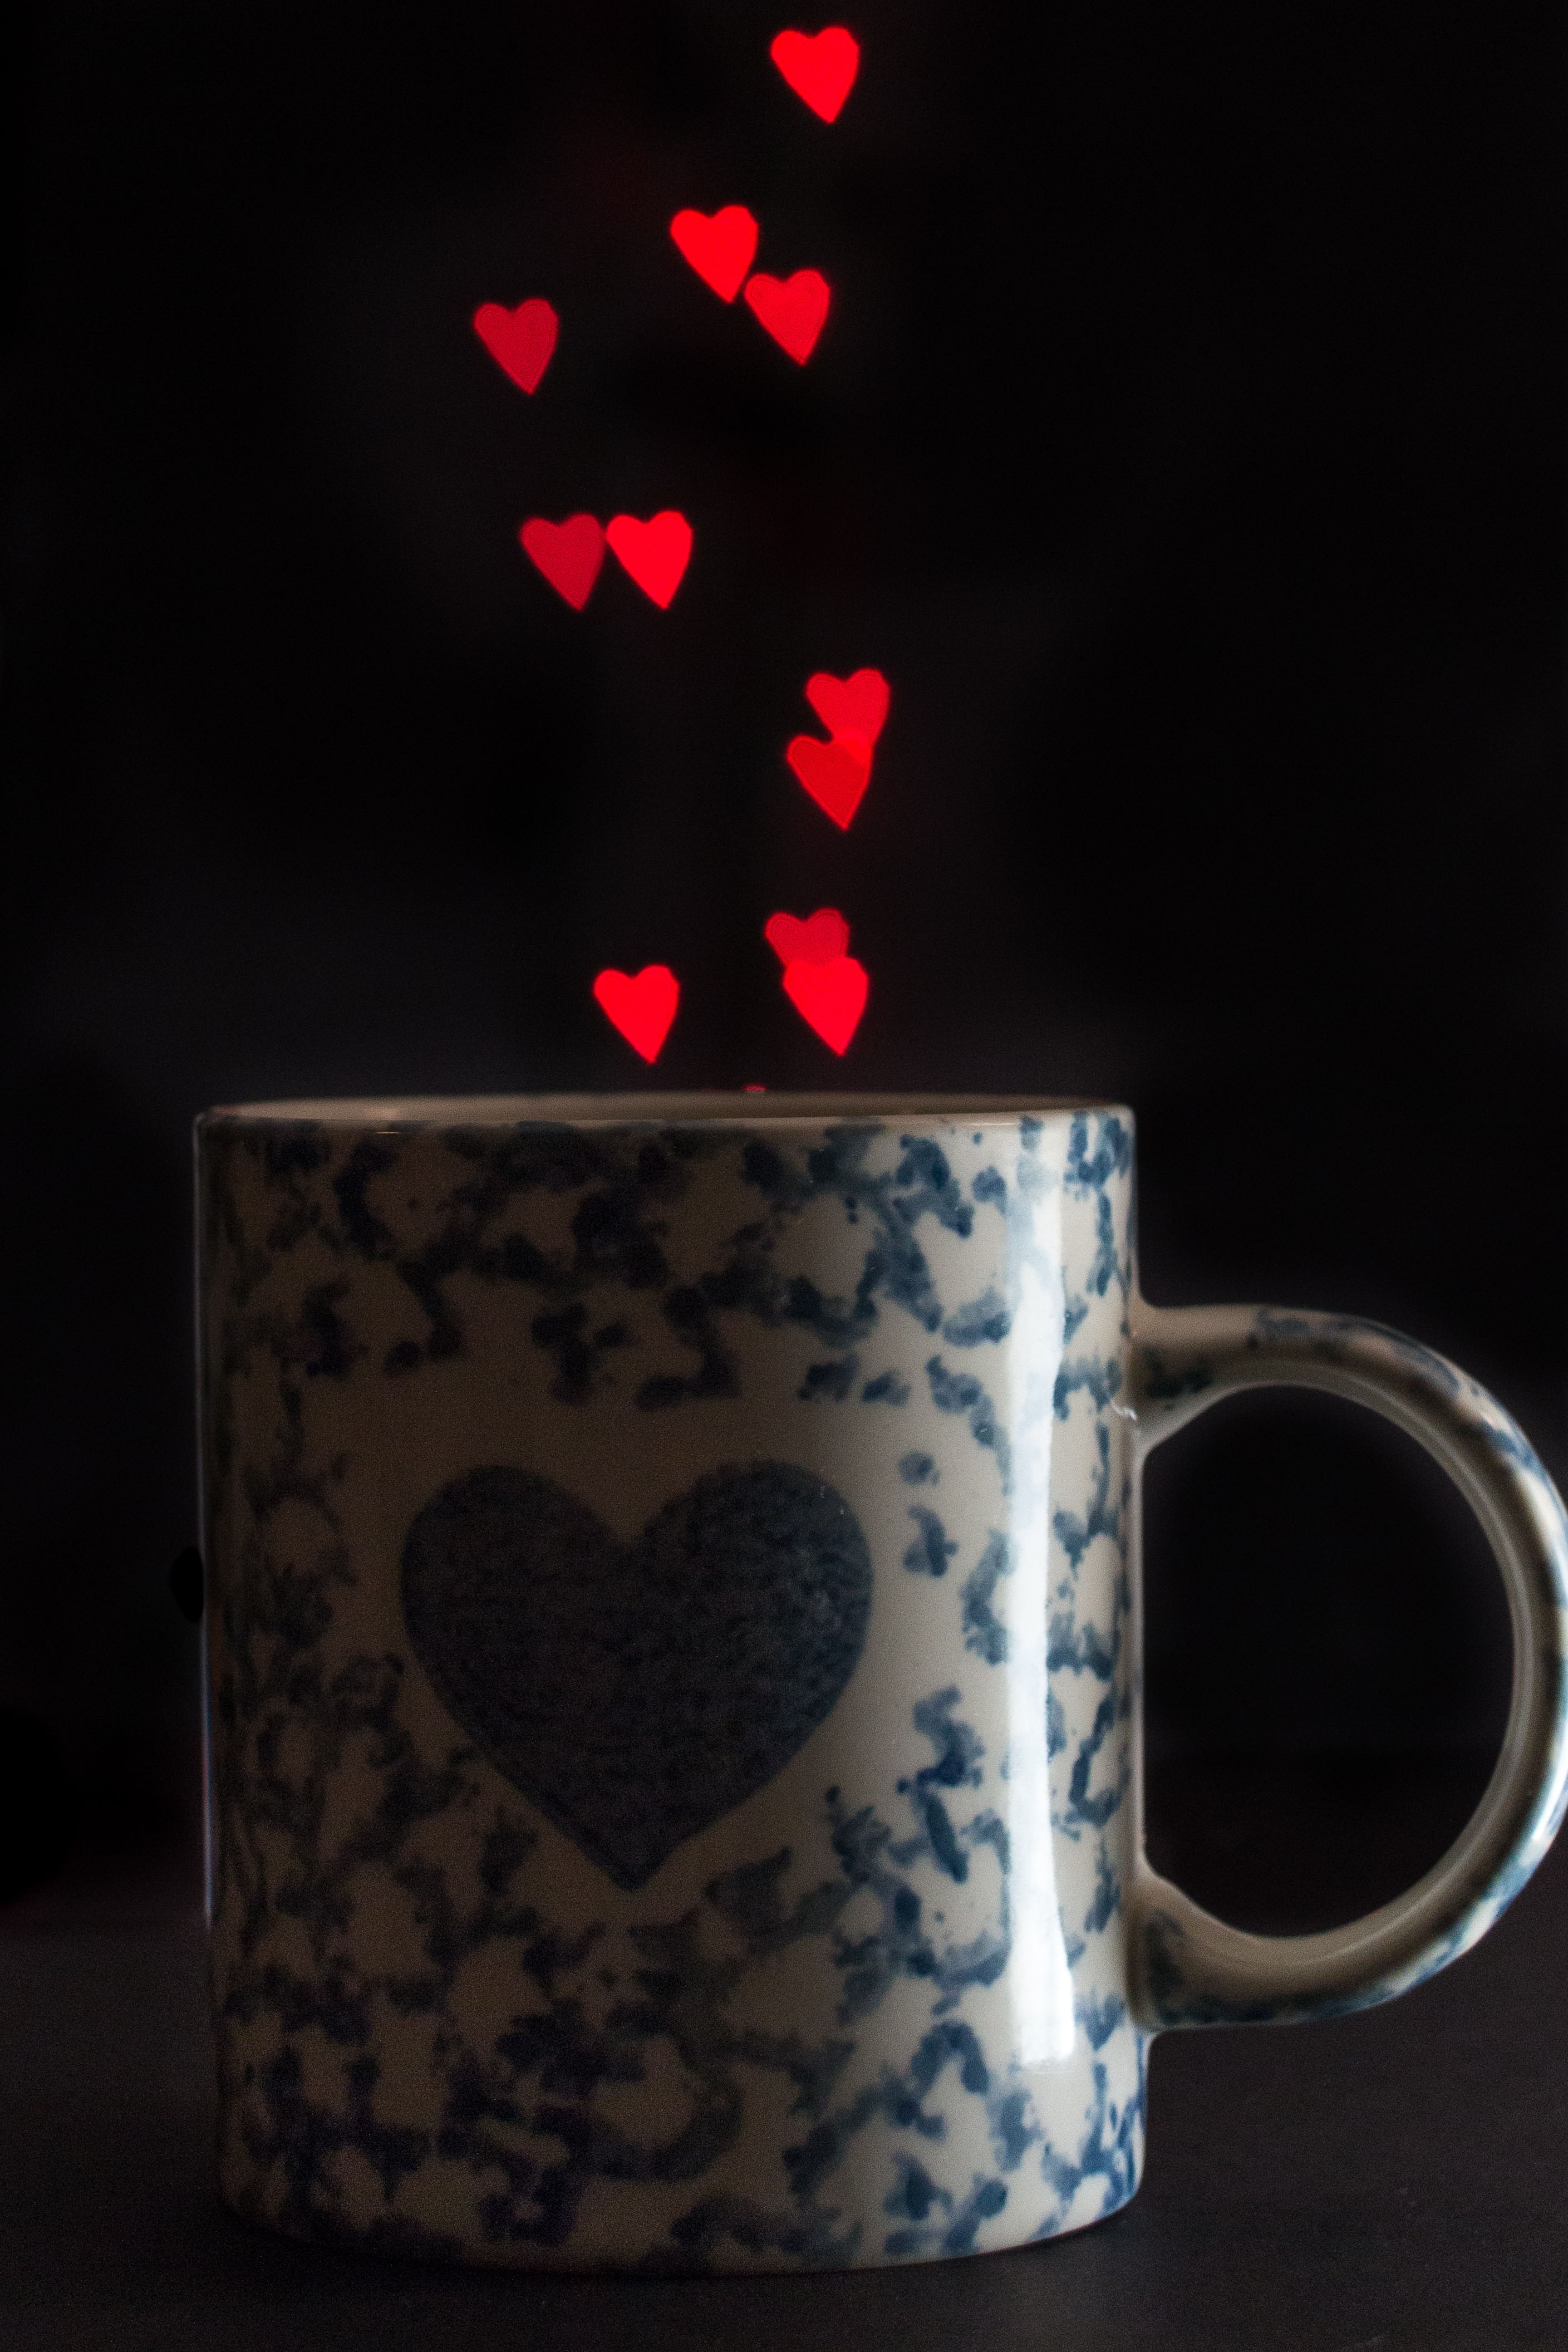 Heart mug with heart bokeh for Valentine's Day! | http://www.roseclearfield.com